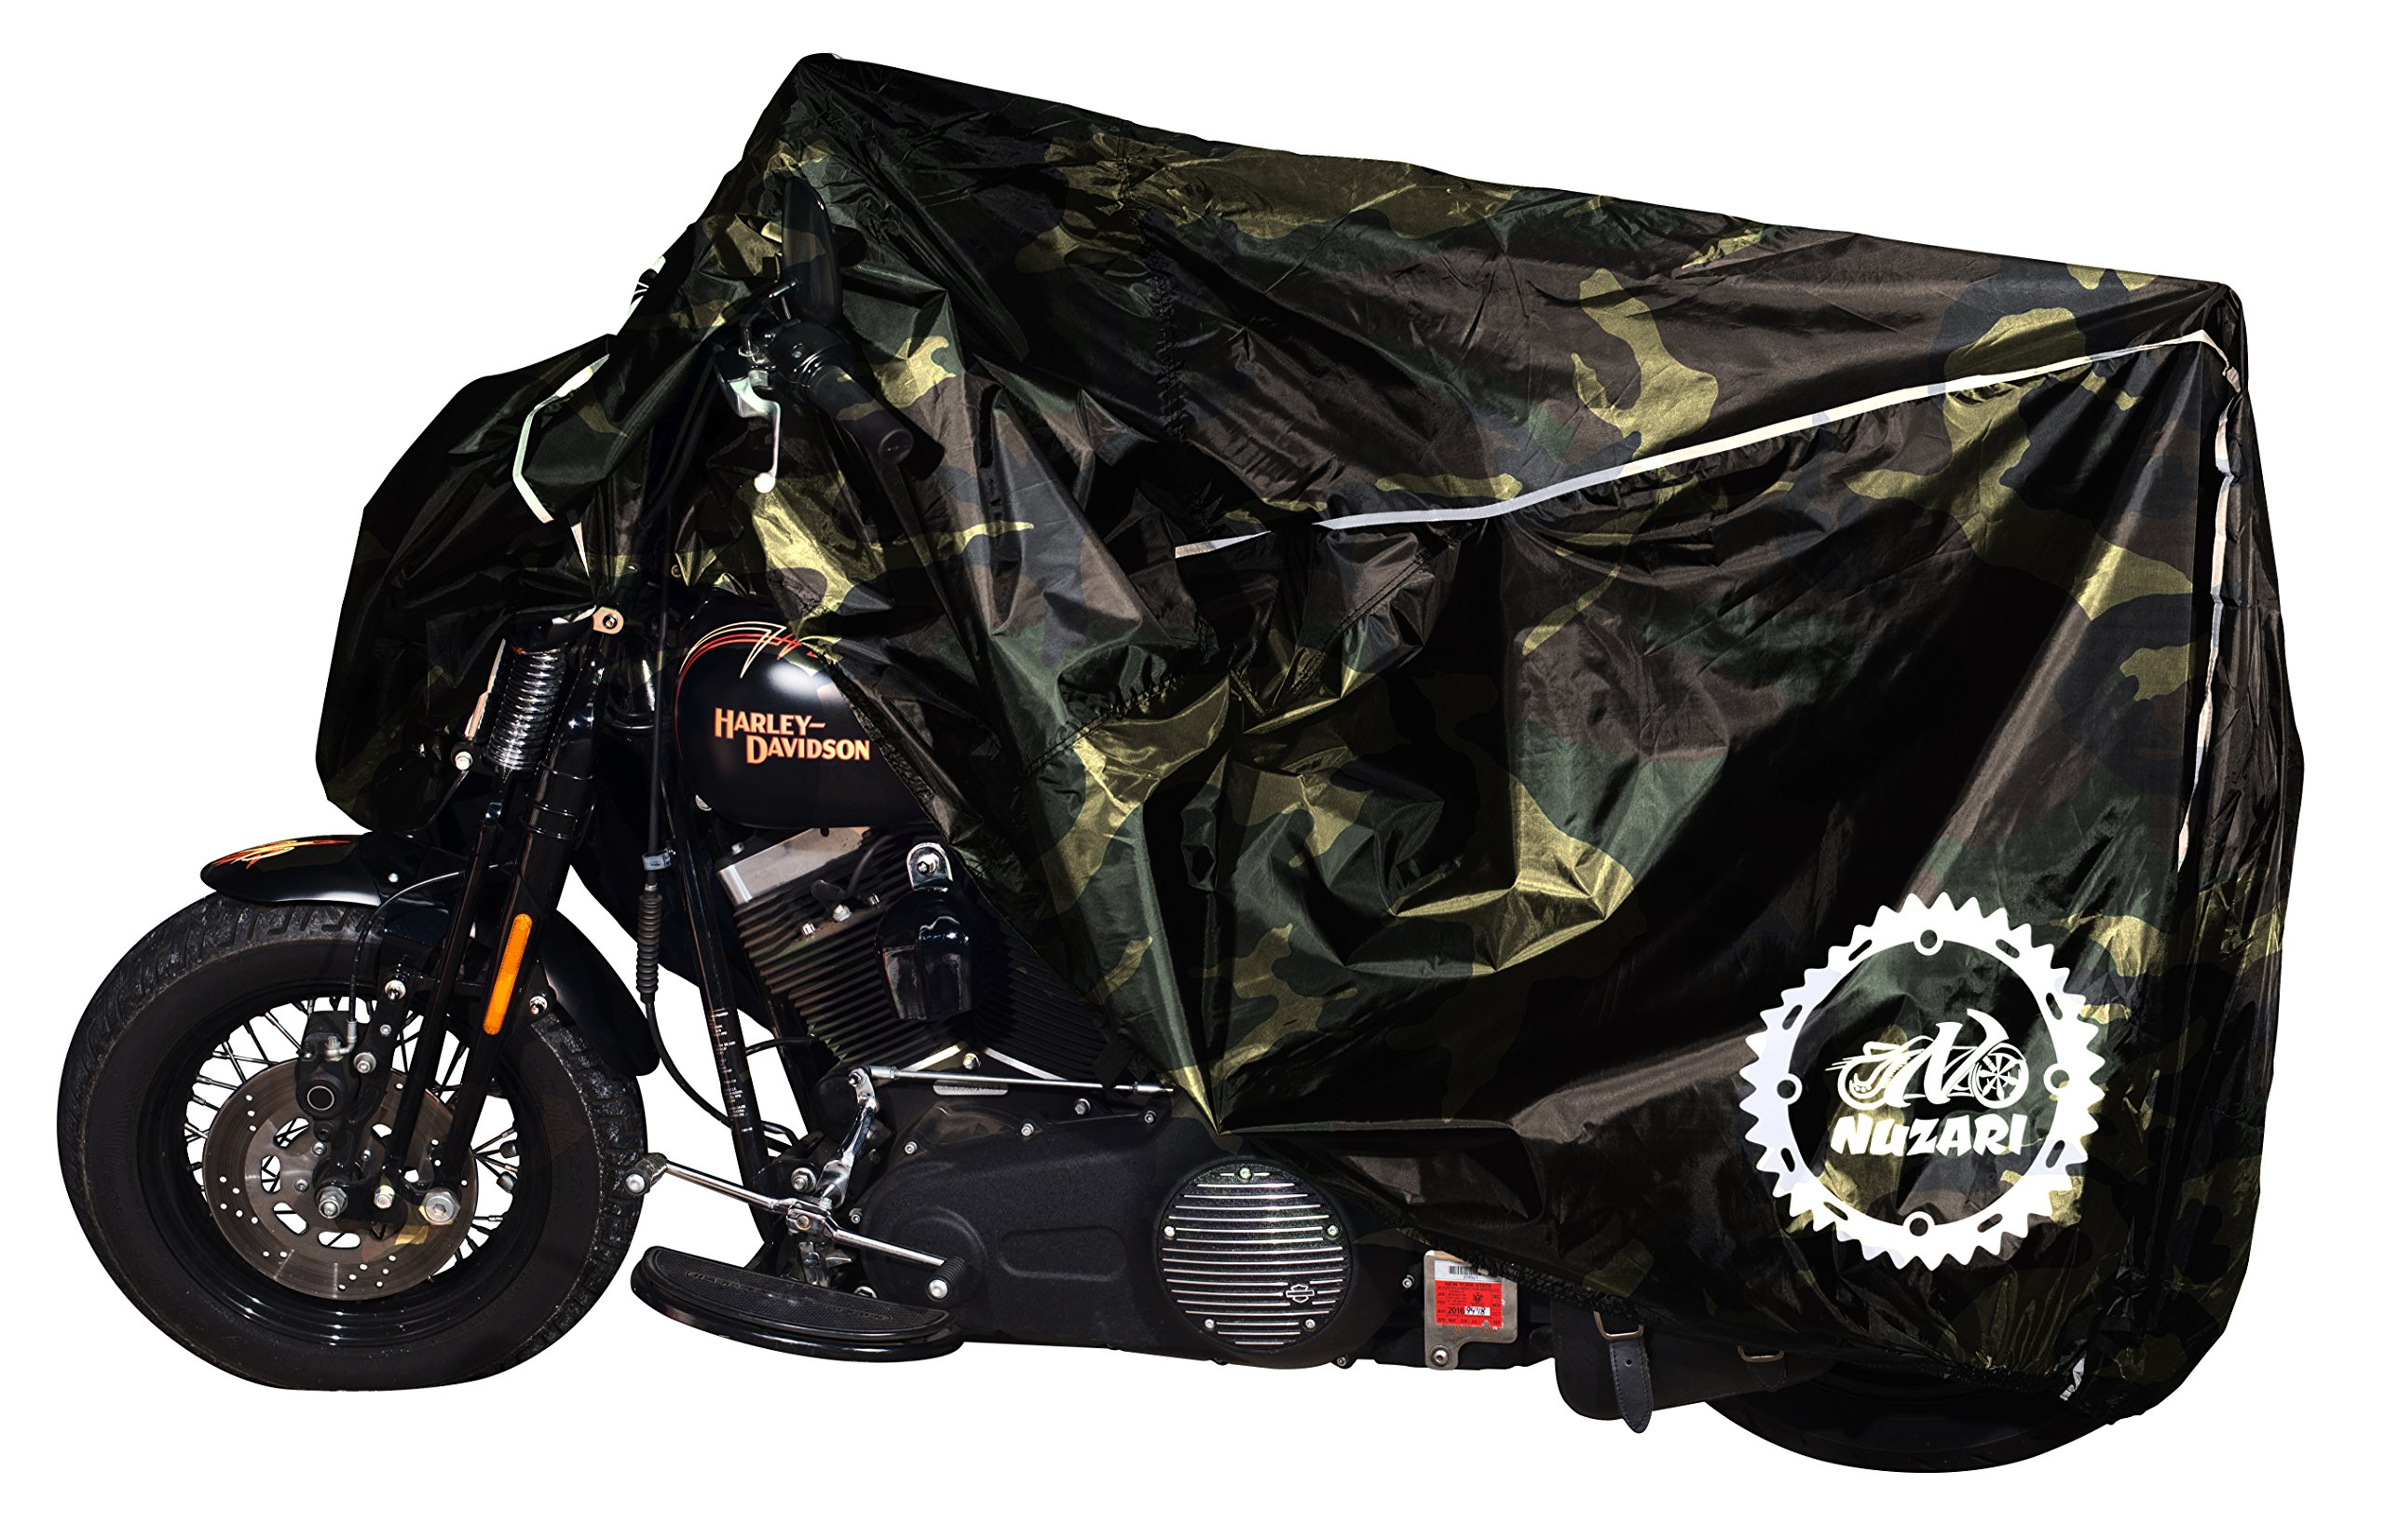 Premium Weather Resistant Covers Waterproof Polyester w/Soft Screen & Heat Resistant Shields.Motorcycle Cover has Lockable fabric, Durable & Long Lasting.Sportbikes & Cruisers (XX-large, Camouflage)